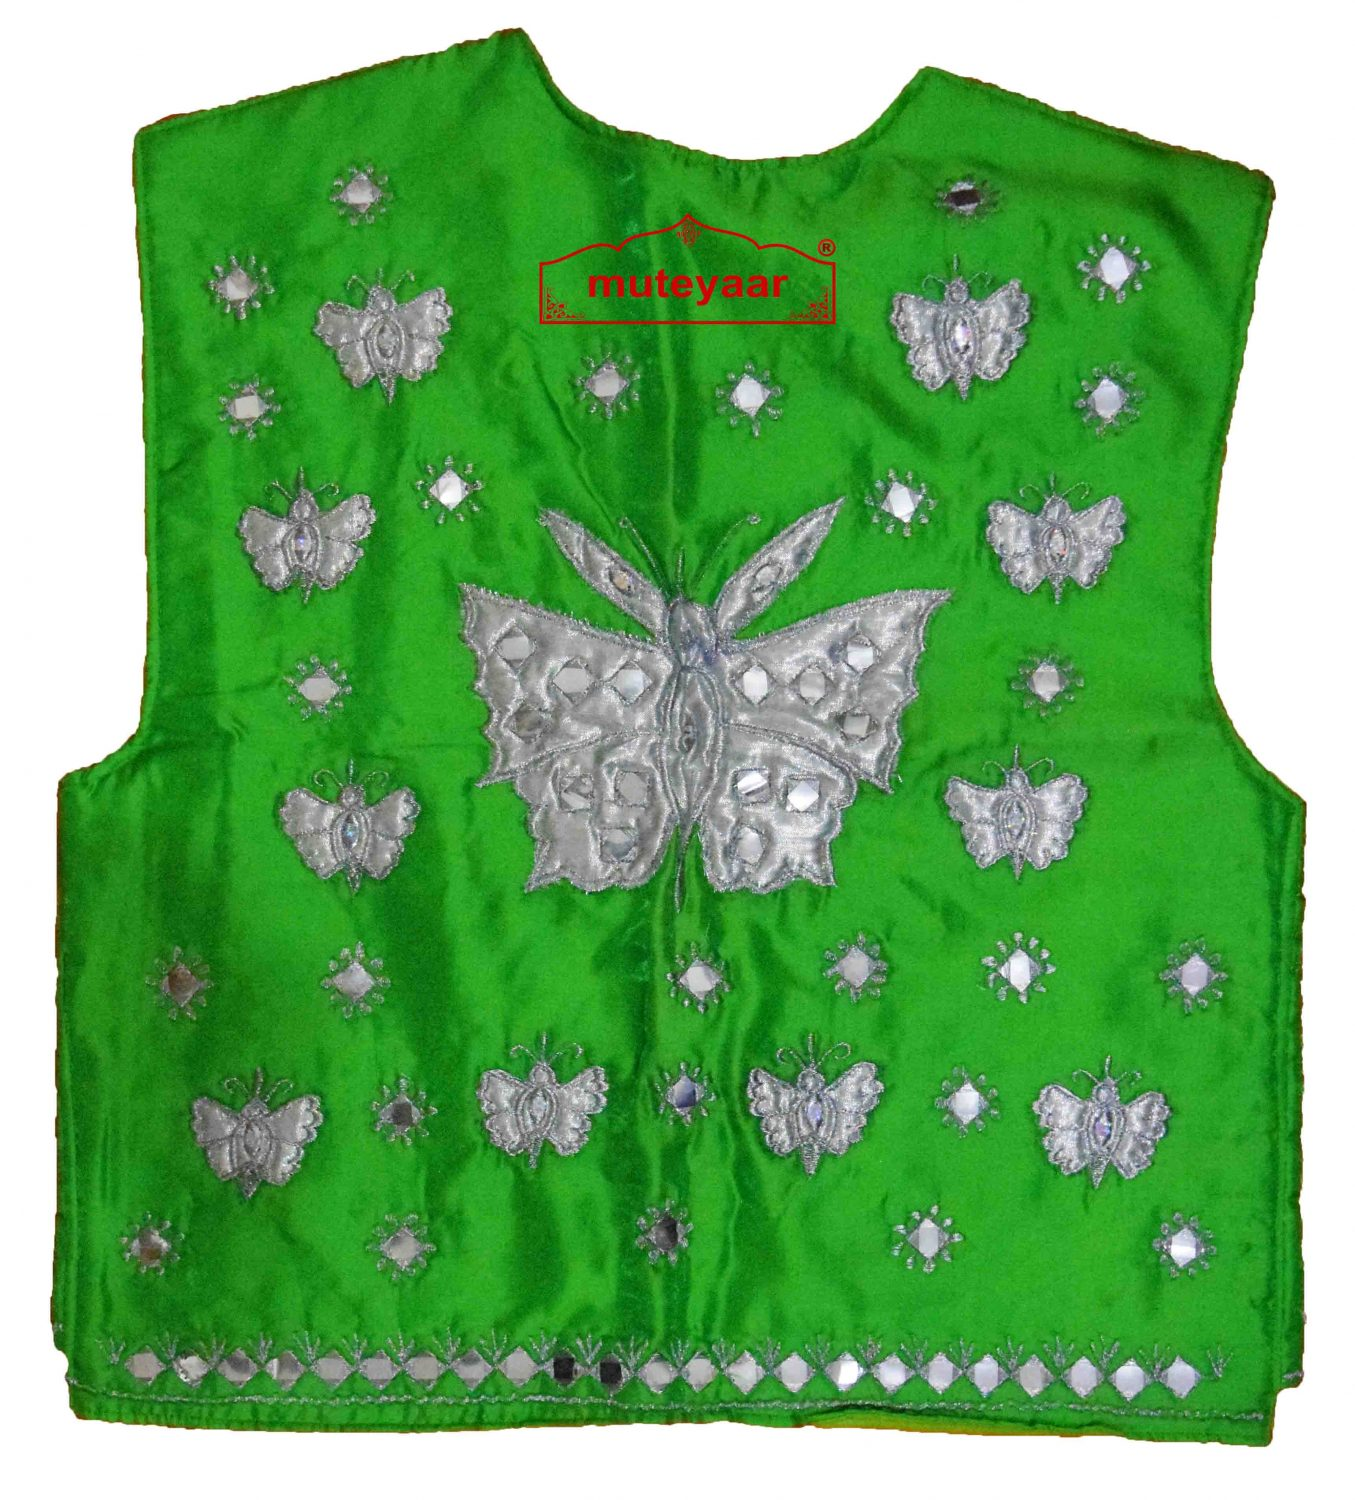 Butterfly Design Embroidered Bhangra Costume Outfit Dance Dress 3